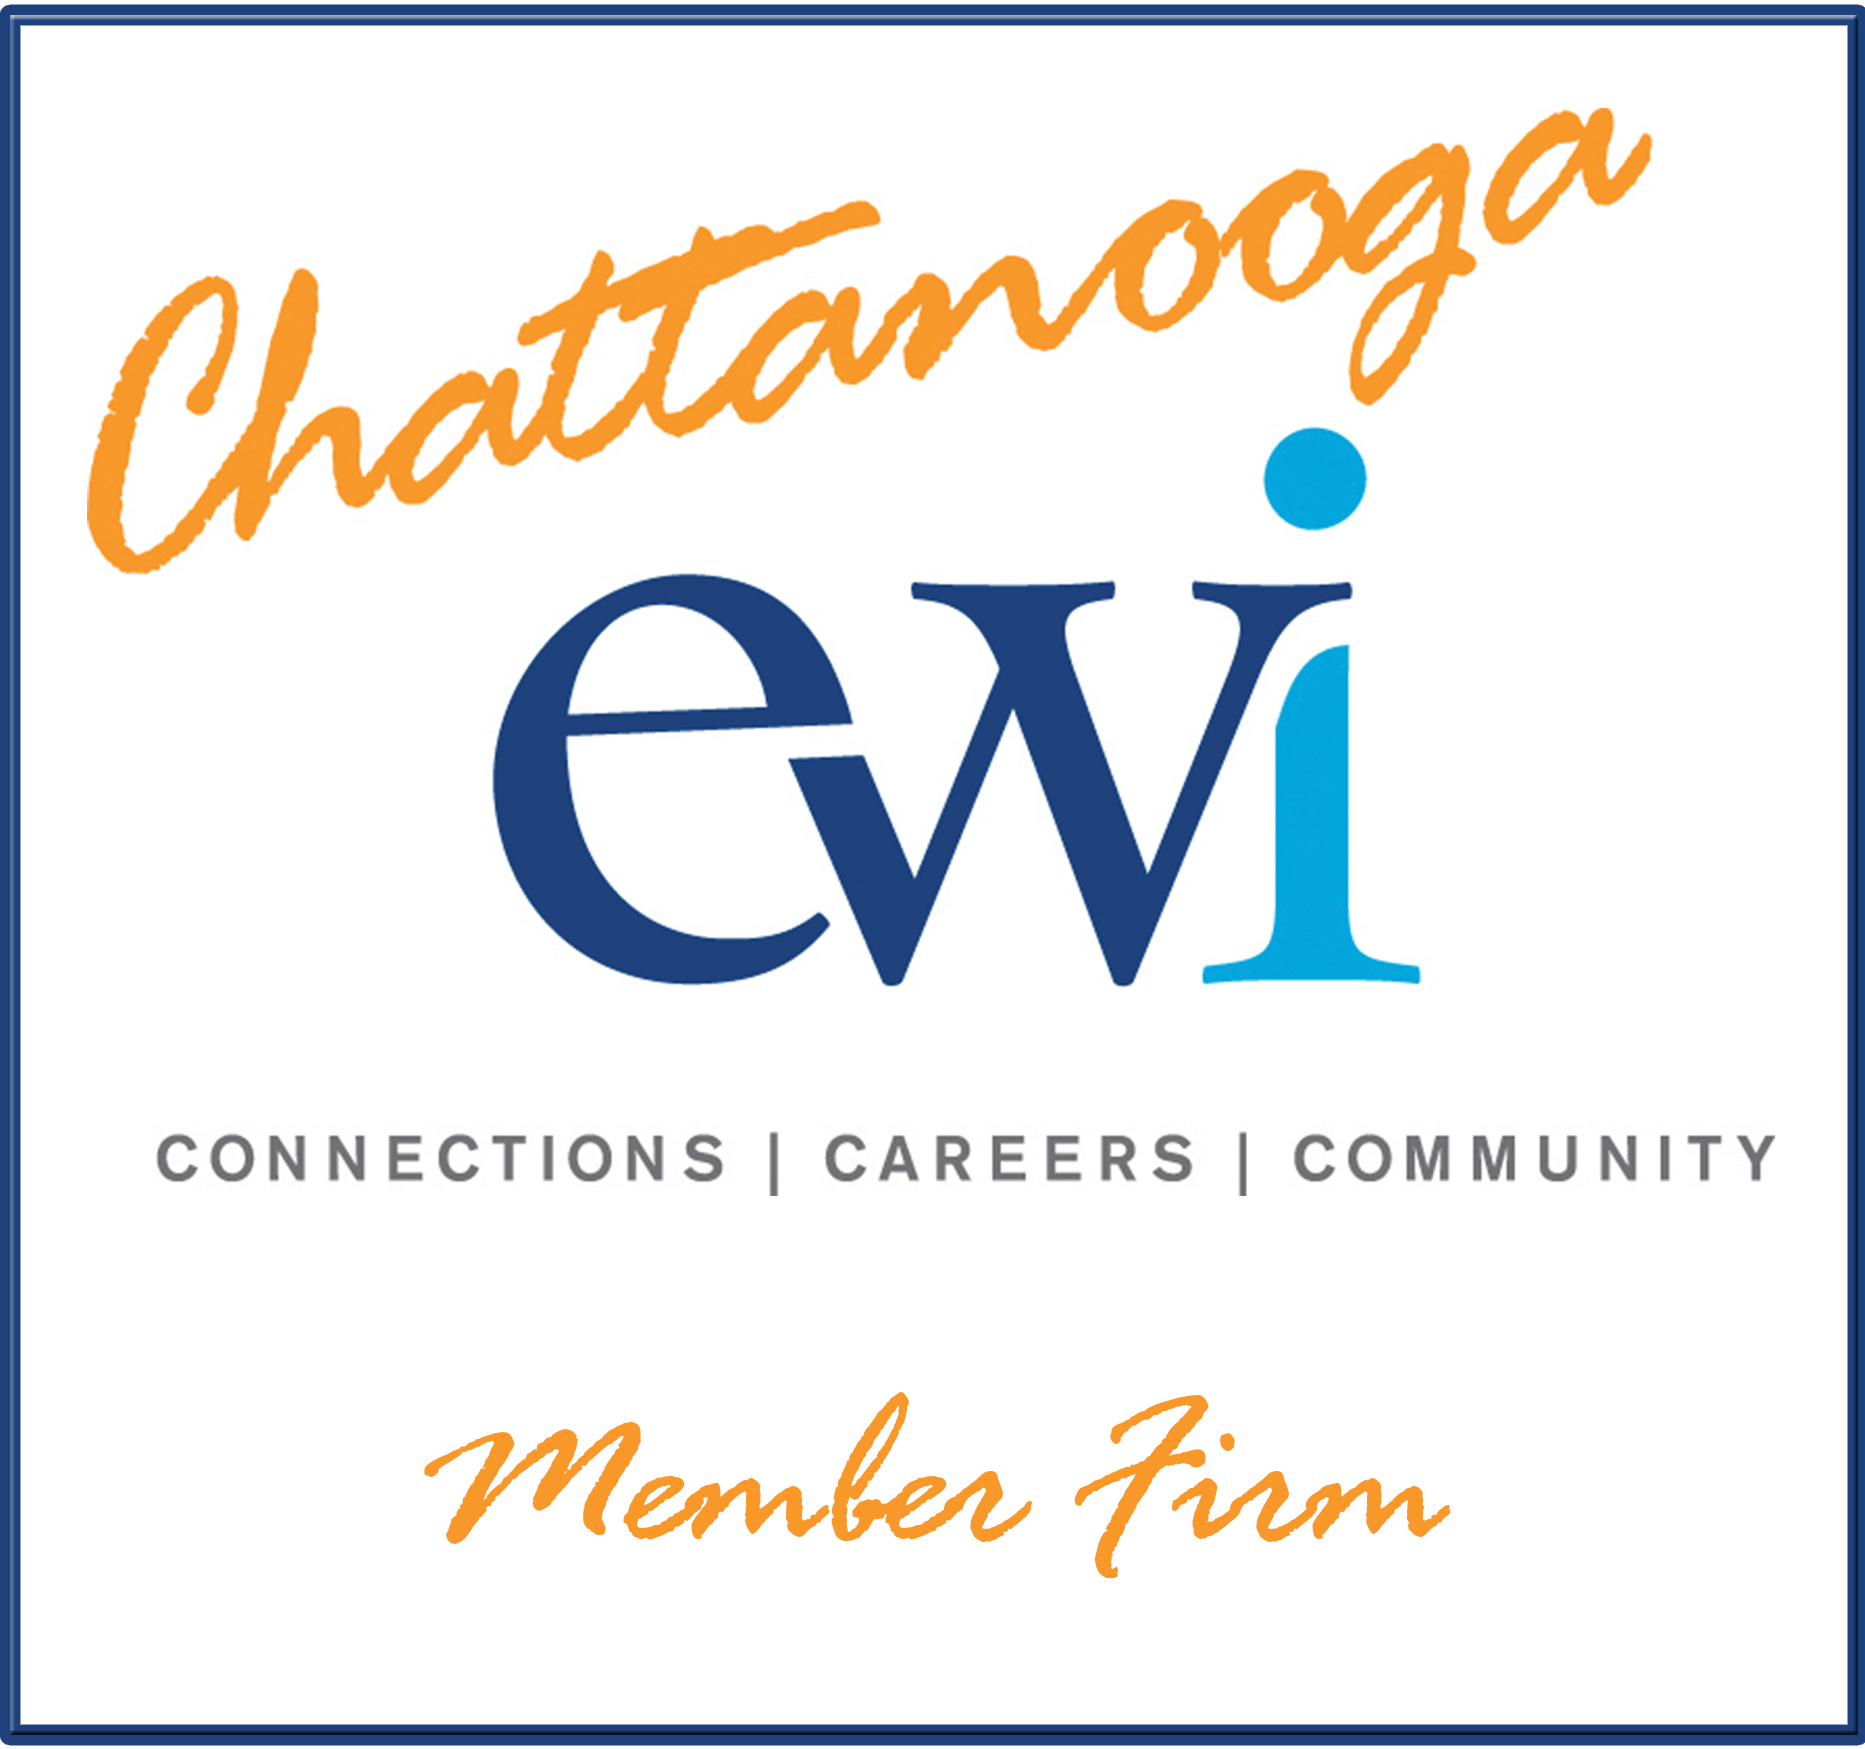 EWI of Chattanooga member firm logo